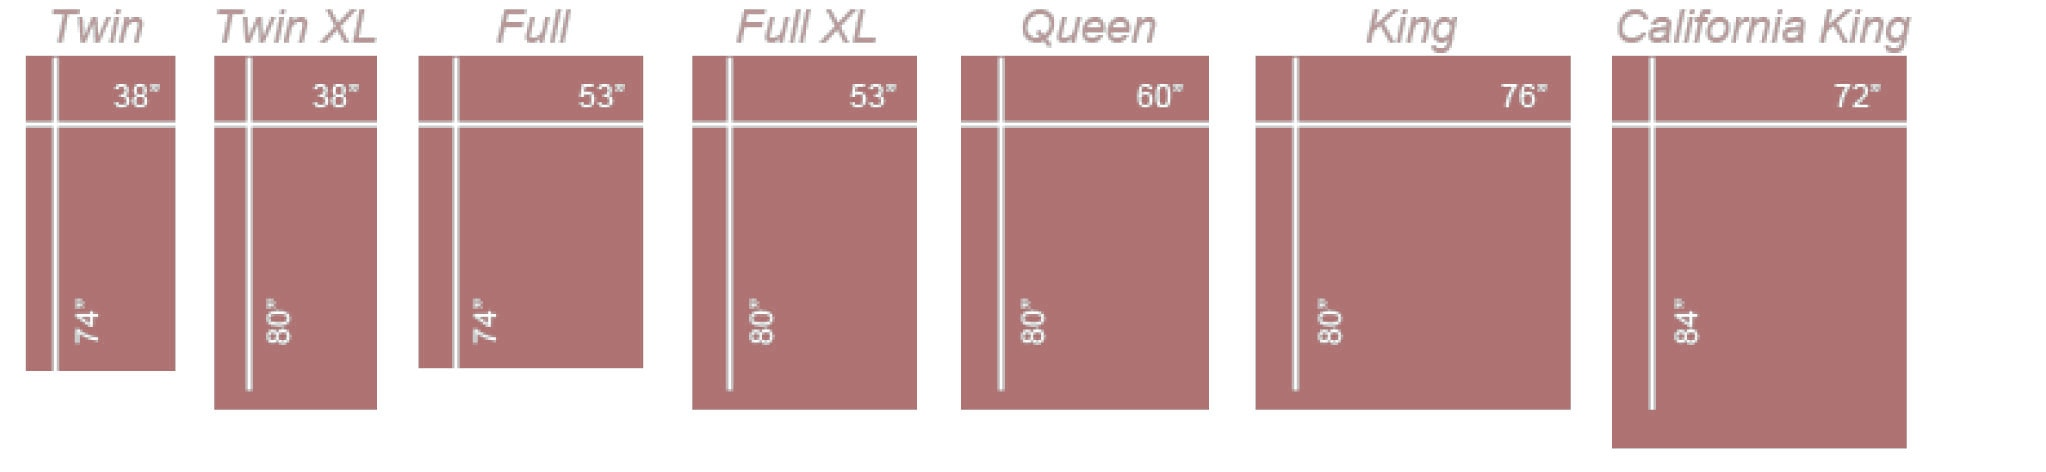 Mattress Sizes Guide